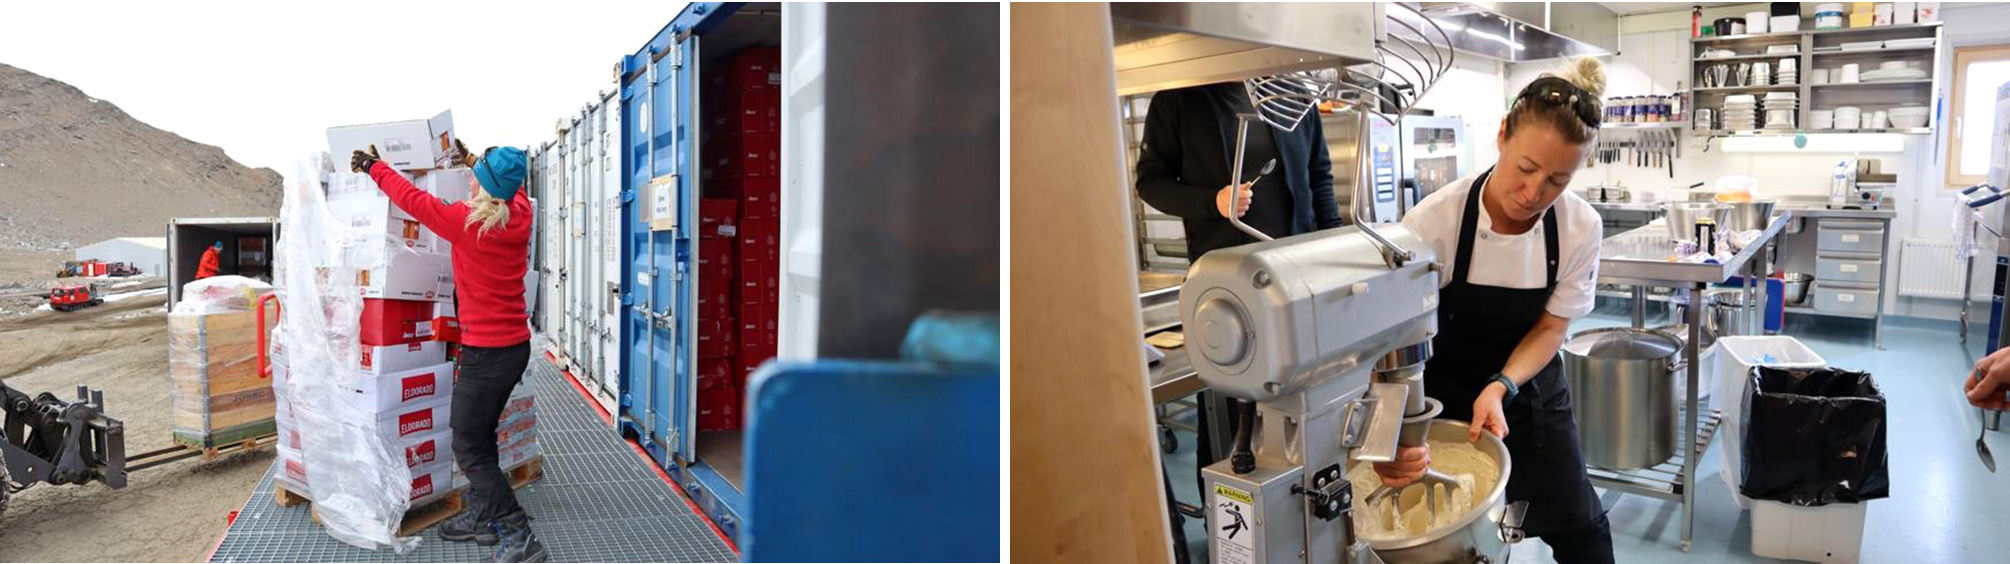 Left: Jansdotter receives the station's annual shipment of dry, frozen and refrigerated food from Norway in January 2020. Right: Jansdotter makes apple and cinnamon ice cream during the summer season with liquid nitrogen for the base. The liquid nitrogen allows you to make ice cream in an instant. (Photos: Alexander Sola)